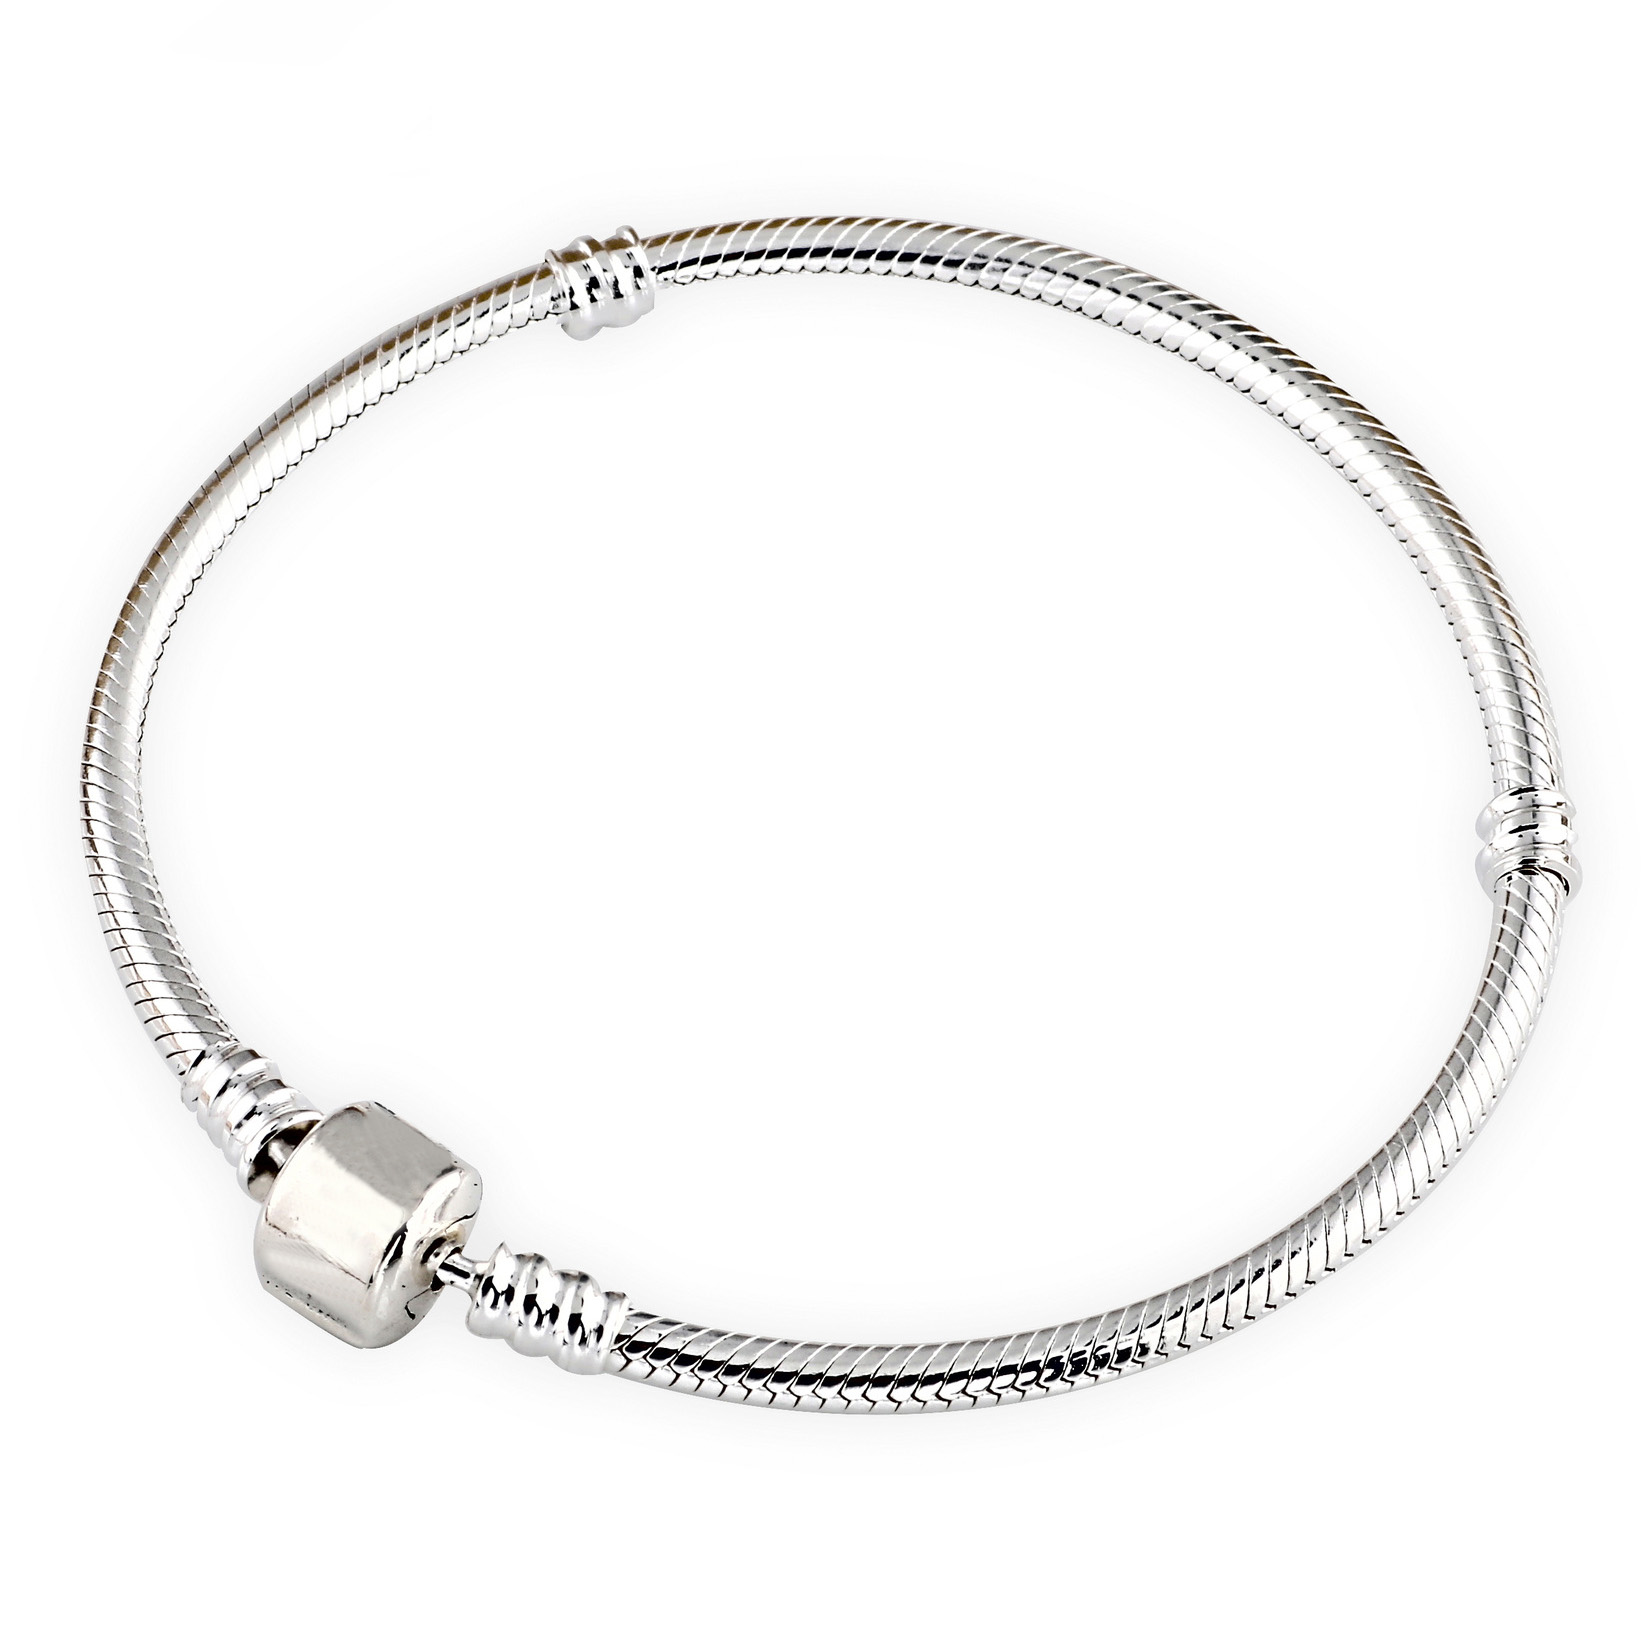 Authenetic 925 Sterling Silver Bracelet Snake chain Lobster Clasp Basic Bracelet Bangle Fit Women Bead Charm DIY Pandora Jewelry 925 sterling silver bracelet rose logo signature padlock smooth snake bracelet bangle fit bead charm diy pandora jewelry